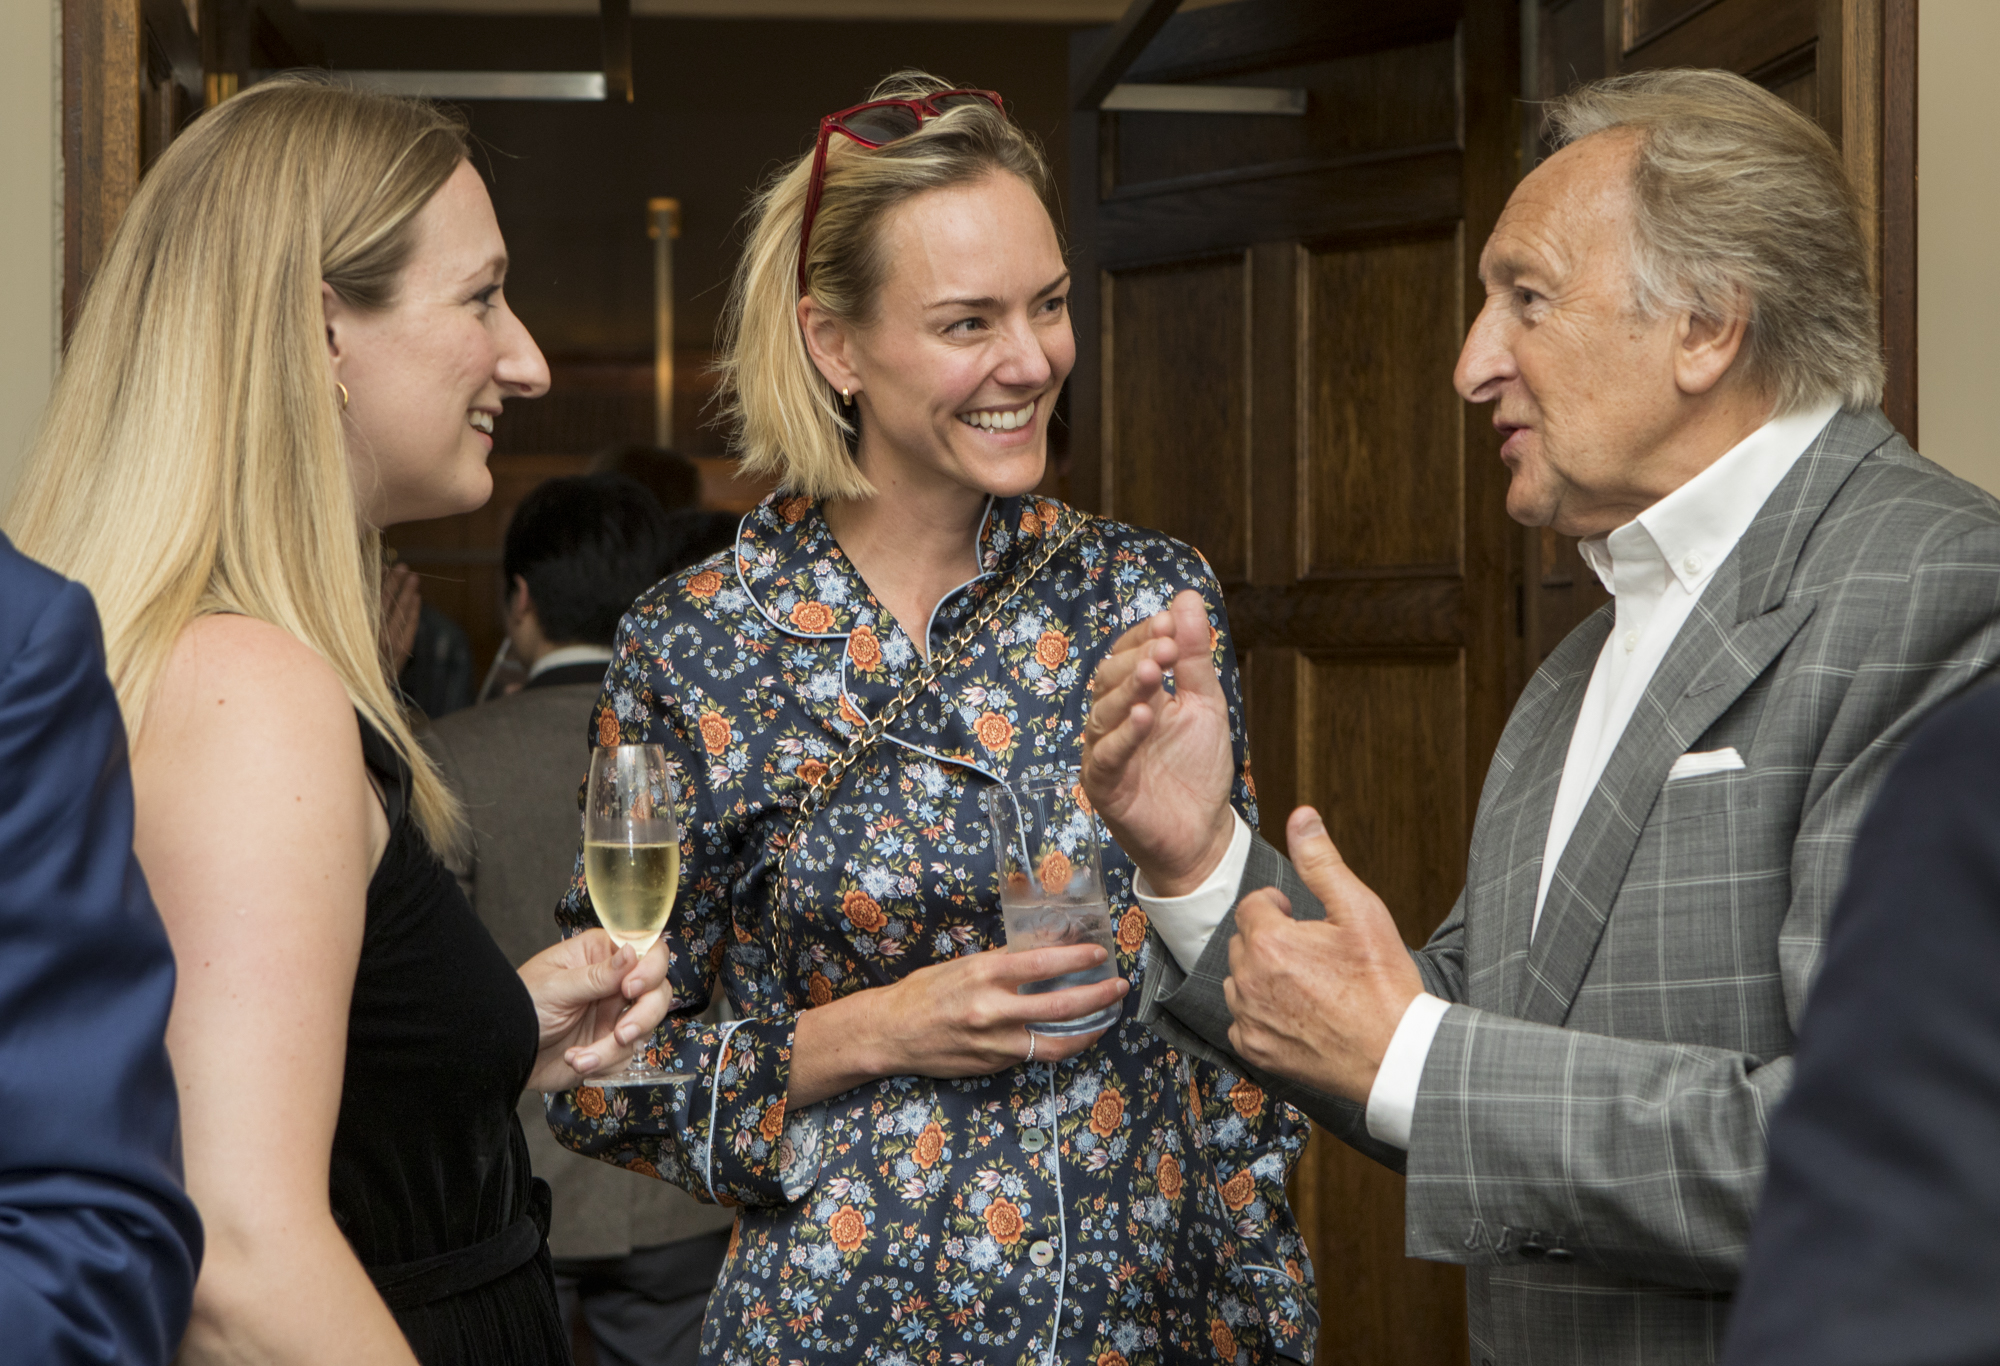 Sarah Coonan - Buying Director, Liberty London; Madeleine Macey - CMO, Liberty; Harold Tillman - Chair, Common Objective